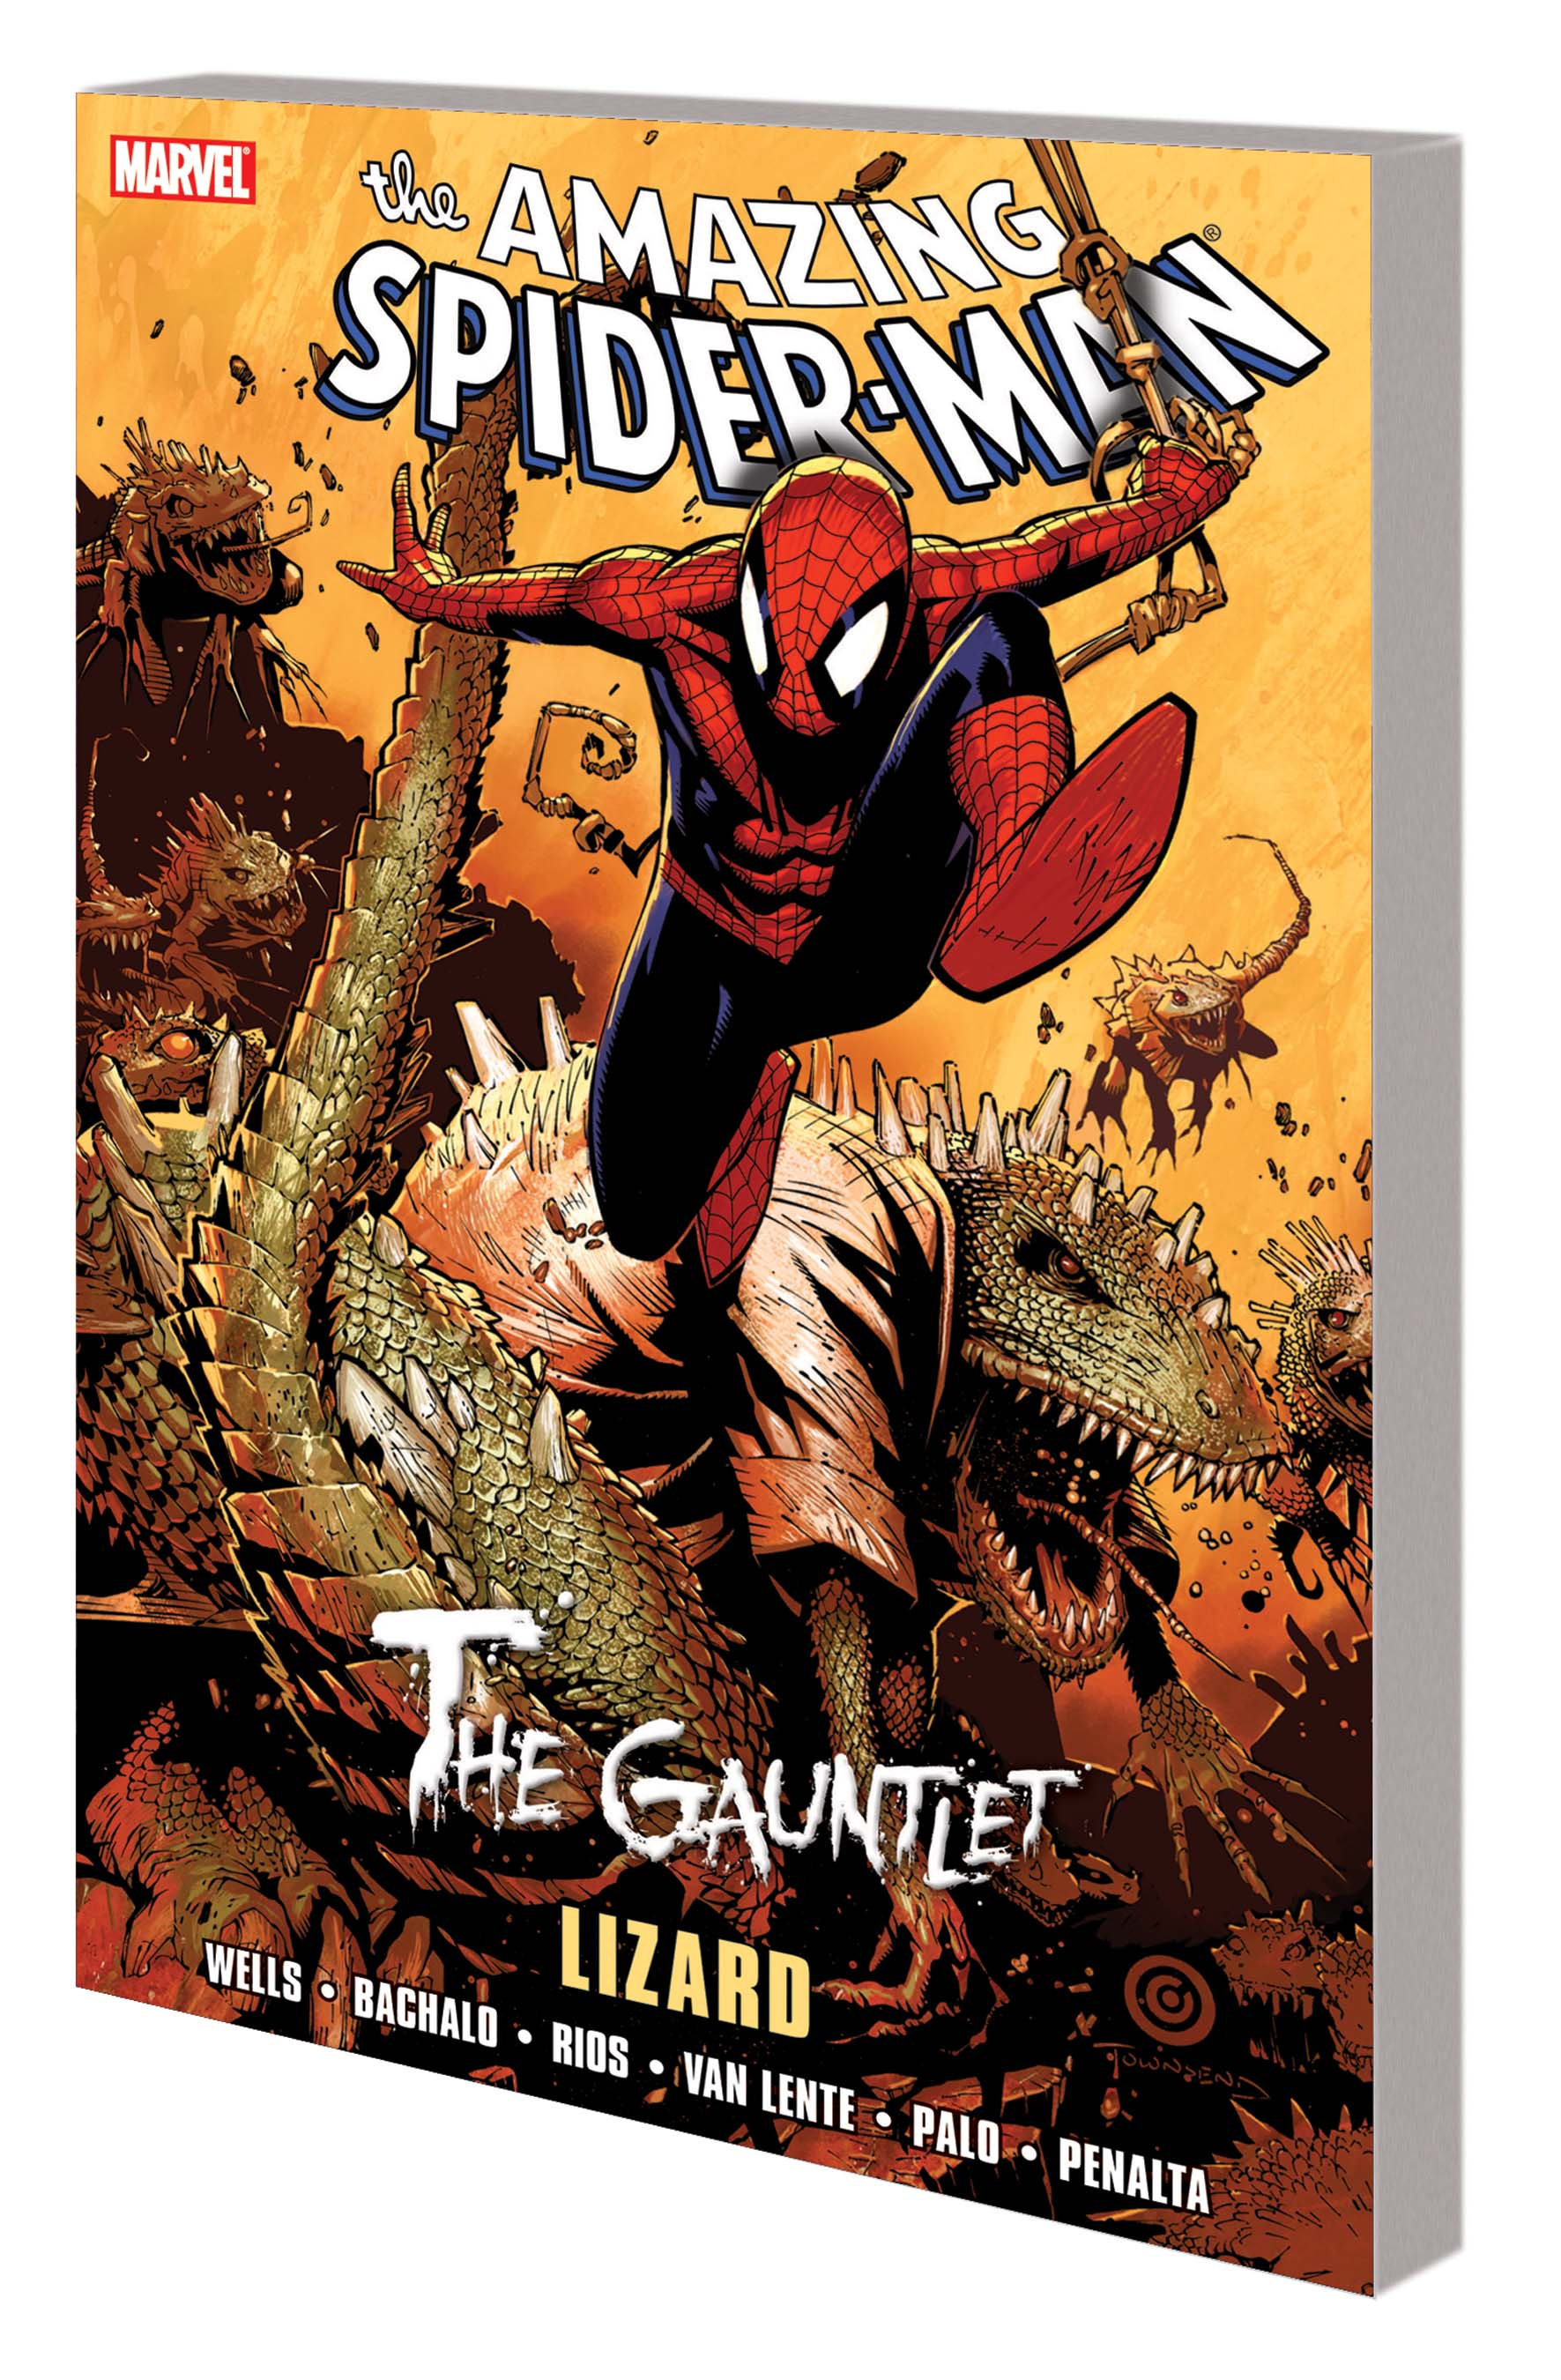 SPIDER-MAN: THE GAUNTLET VOL. 5 - LIZARD  (Trade Paperback)